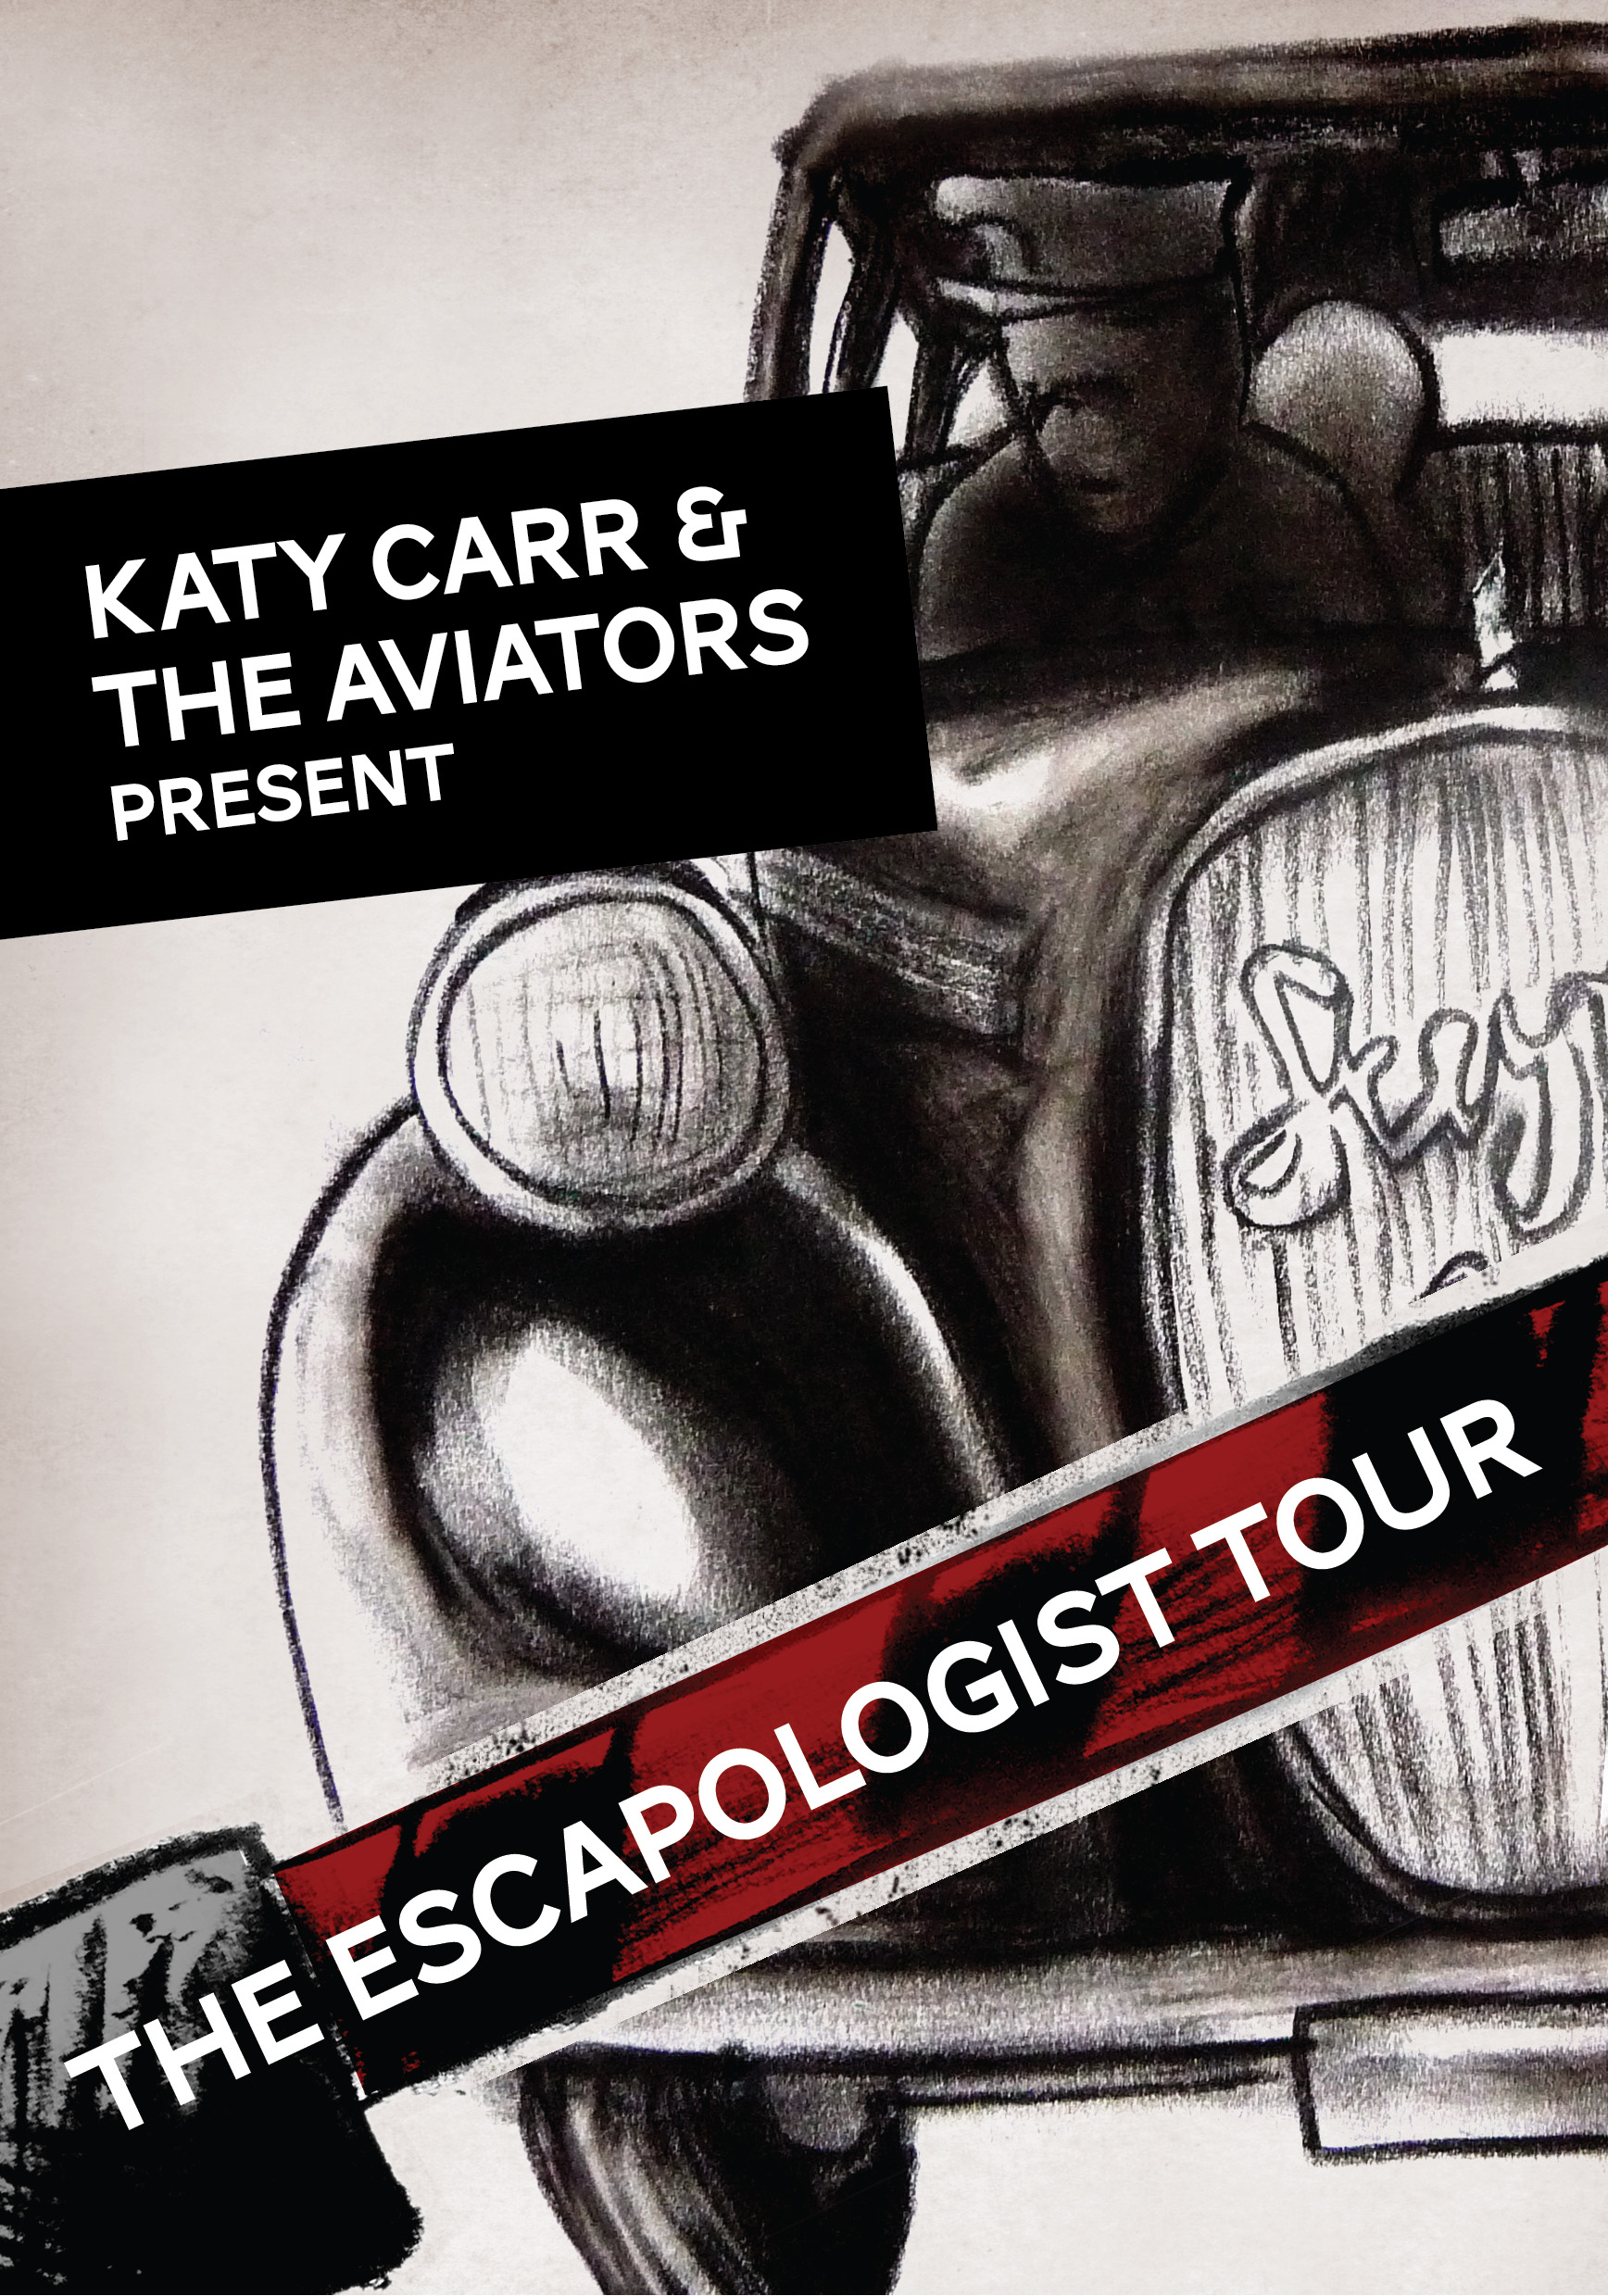 Katy Carr and the Aviators Escapologist Tour 2011